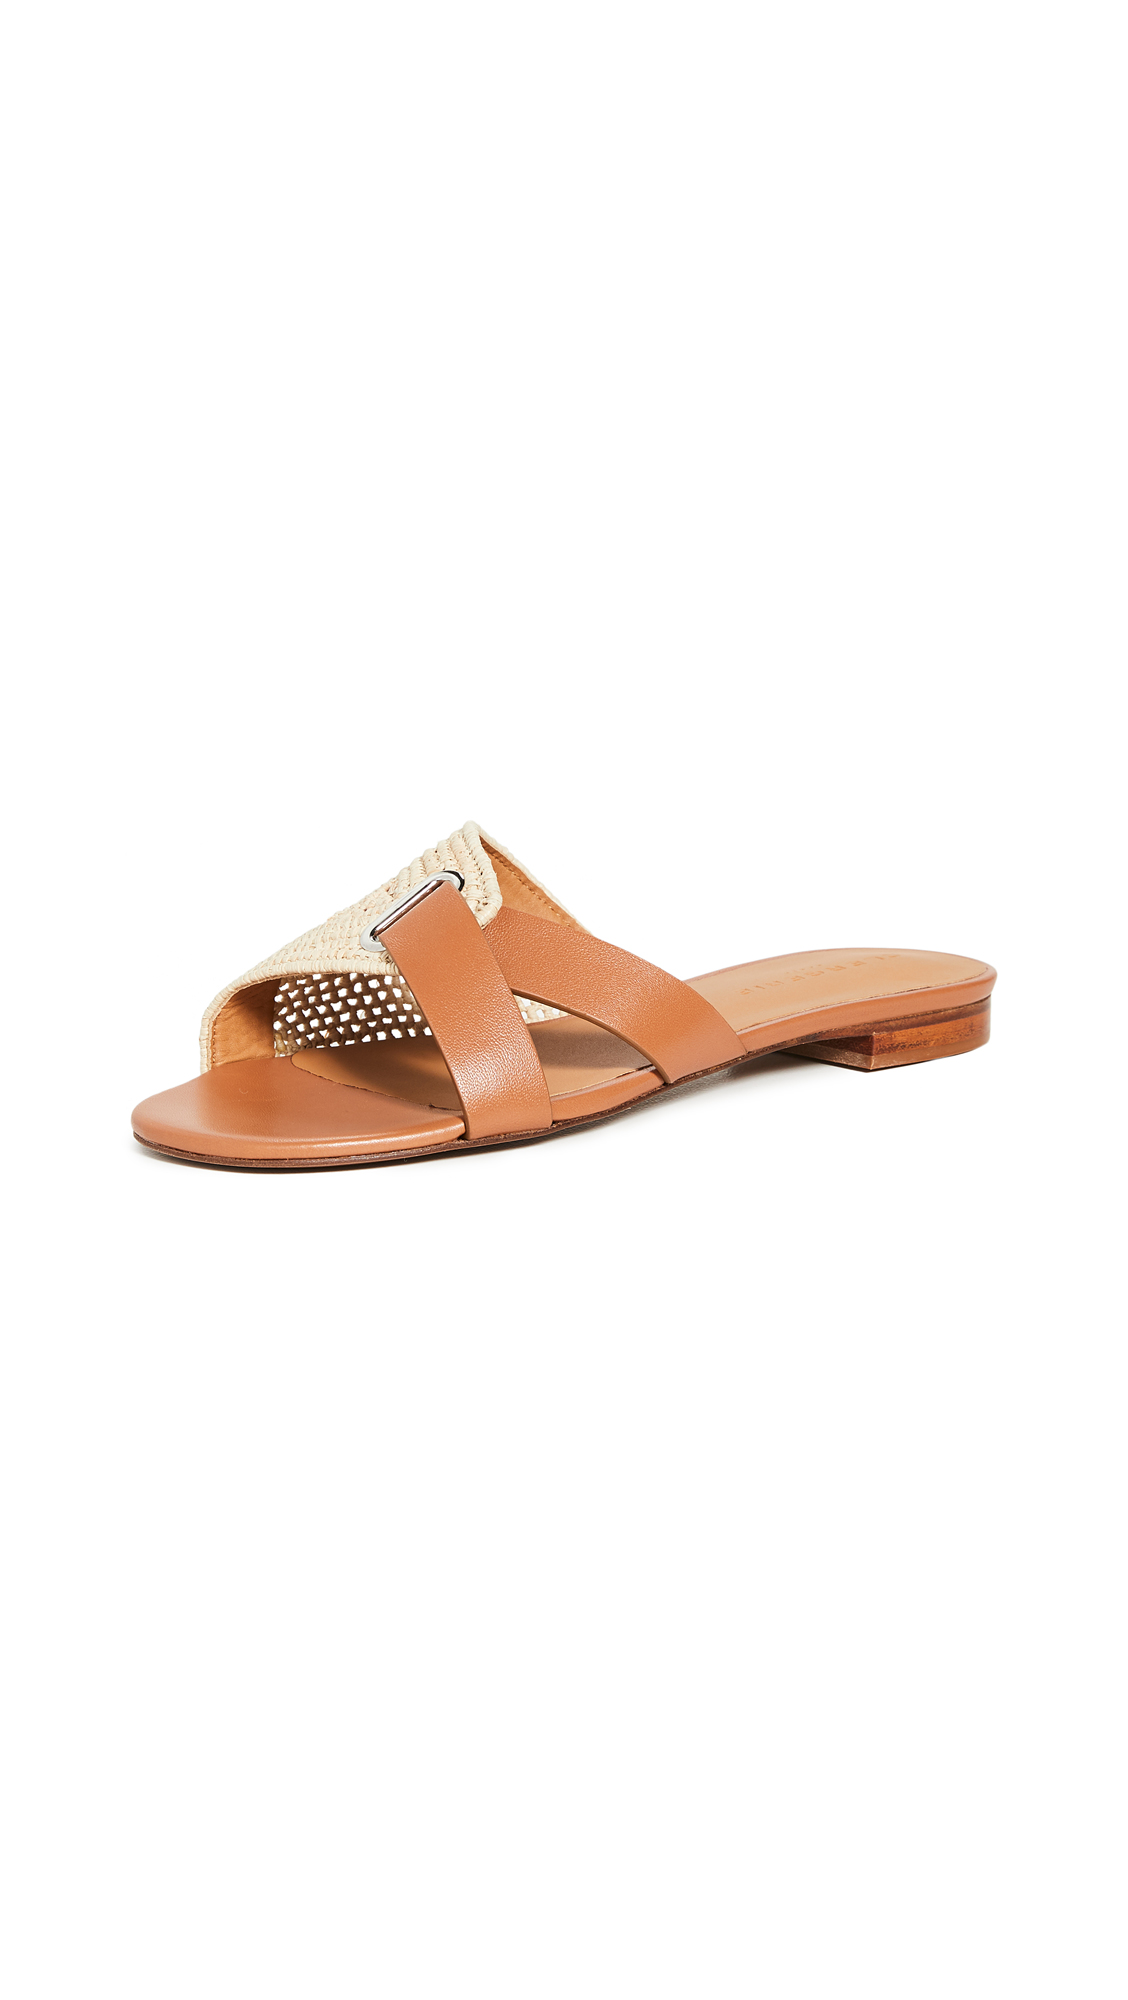 Buy Clergerie Ida Slides online, shop Clergerie